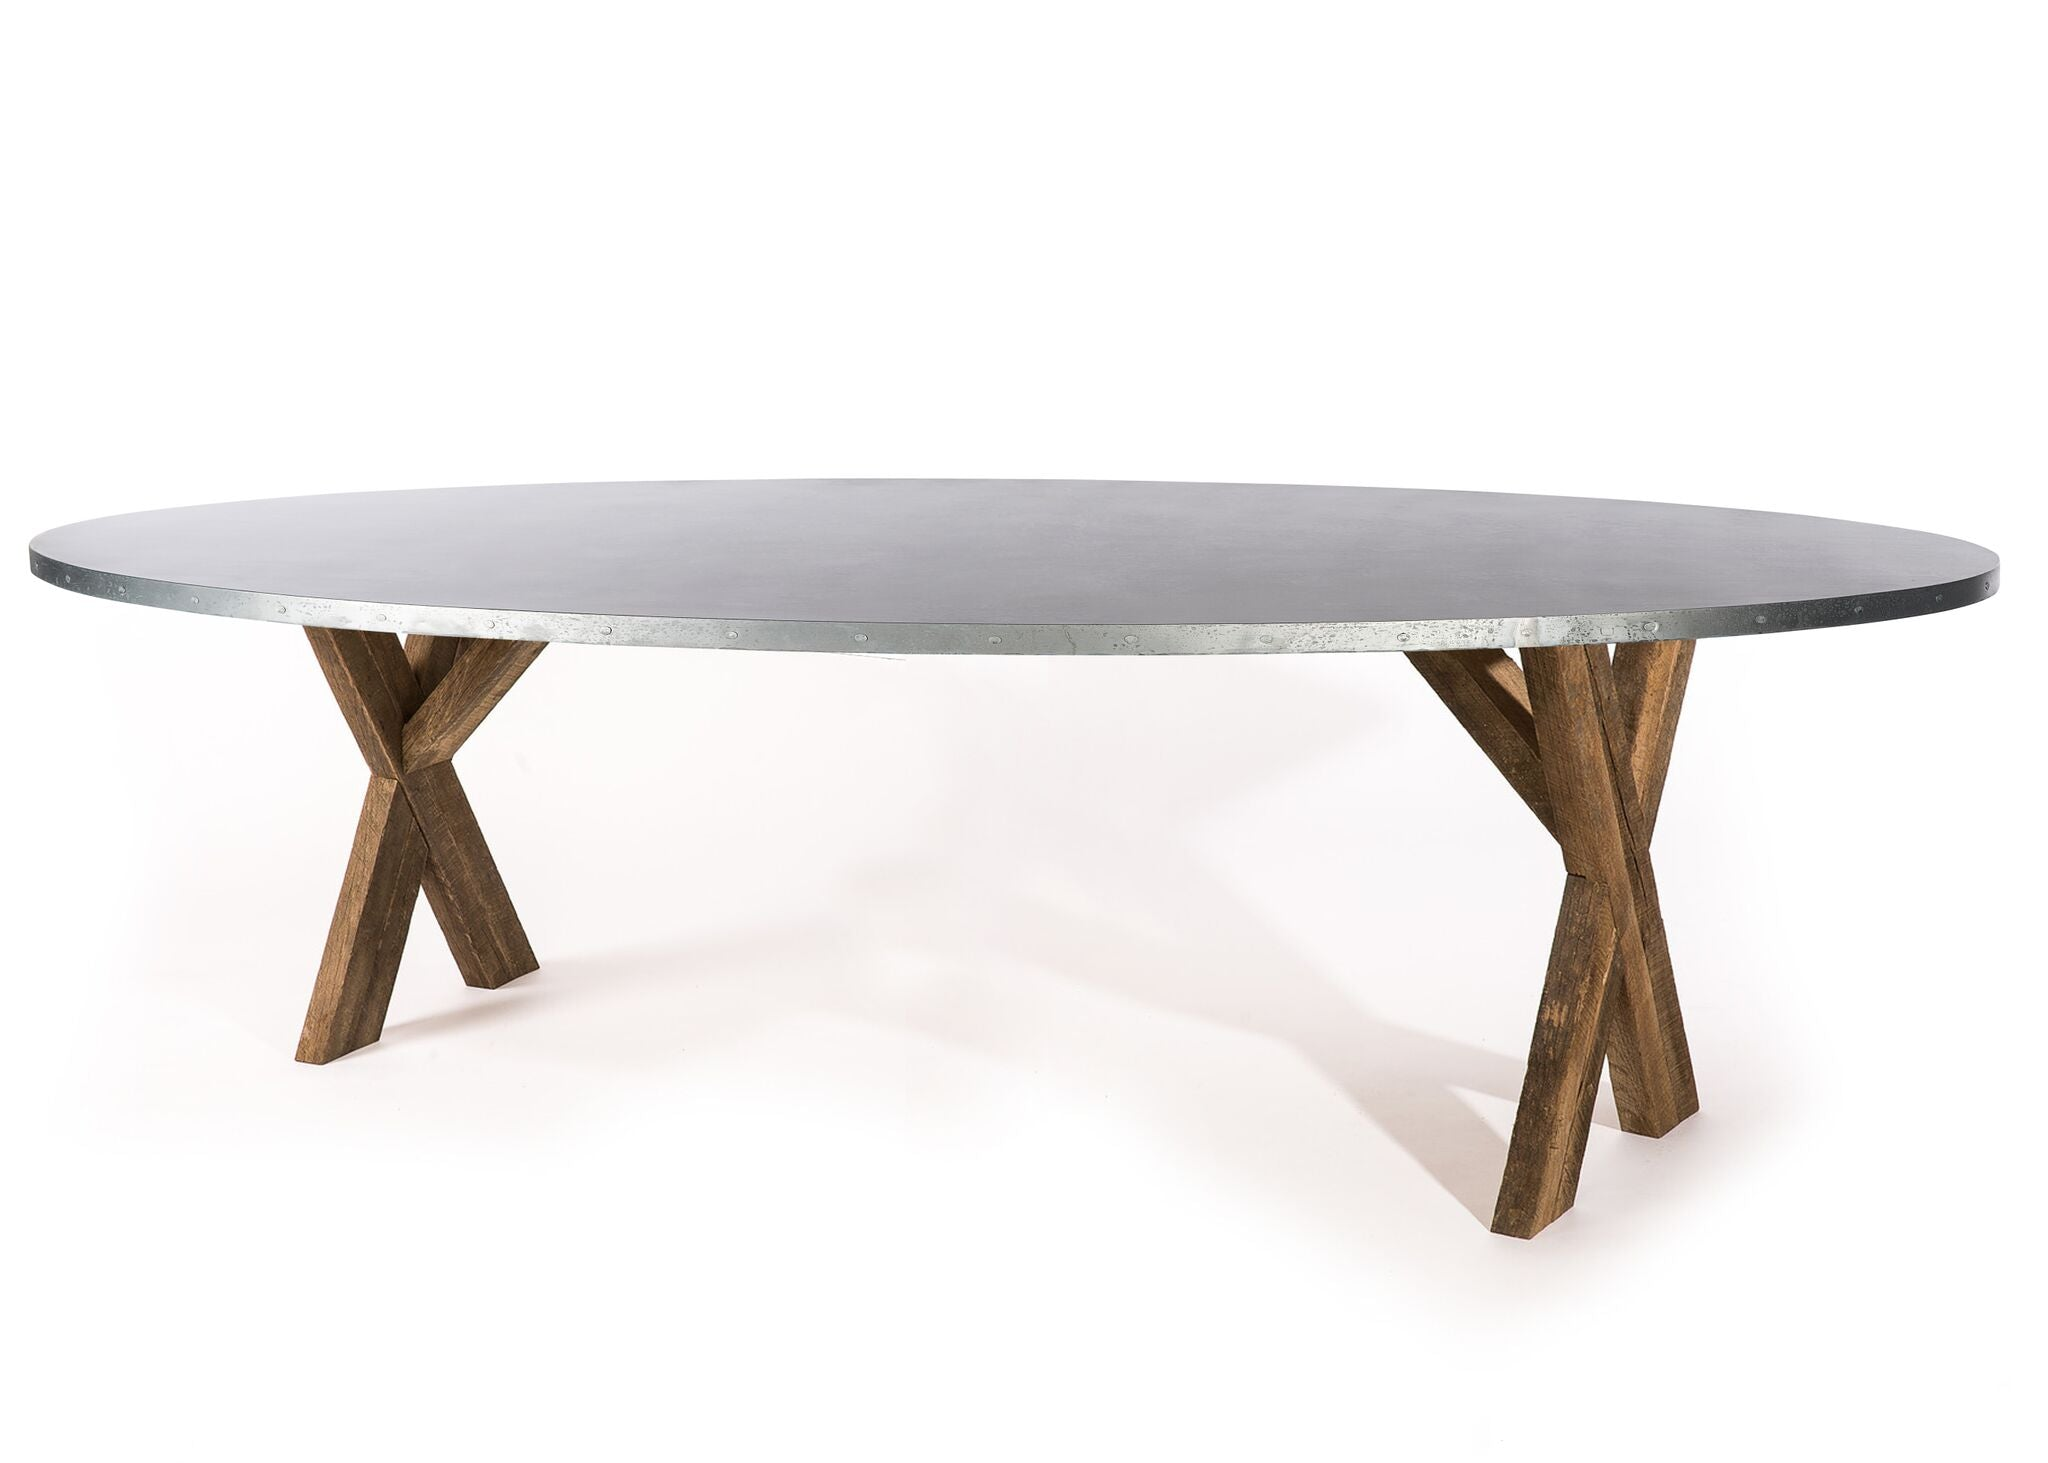 Zinc Oval Tables | X Base Trestle Table | CLASSIC | White Wash on Reclaimed Oak | CUSTOM SIZE L 72 W 37 H 30 | 2"